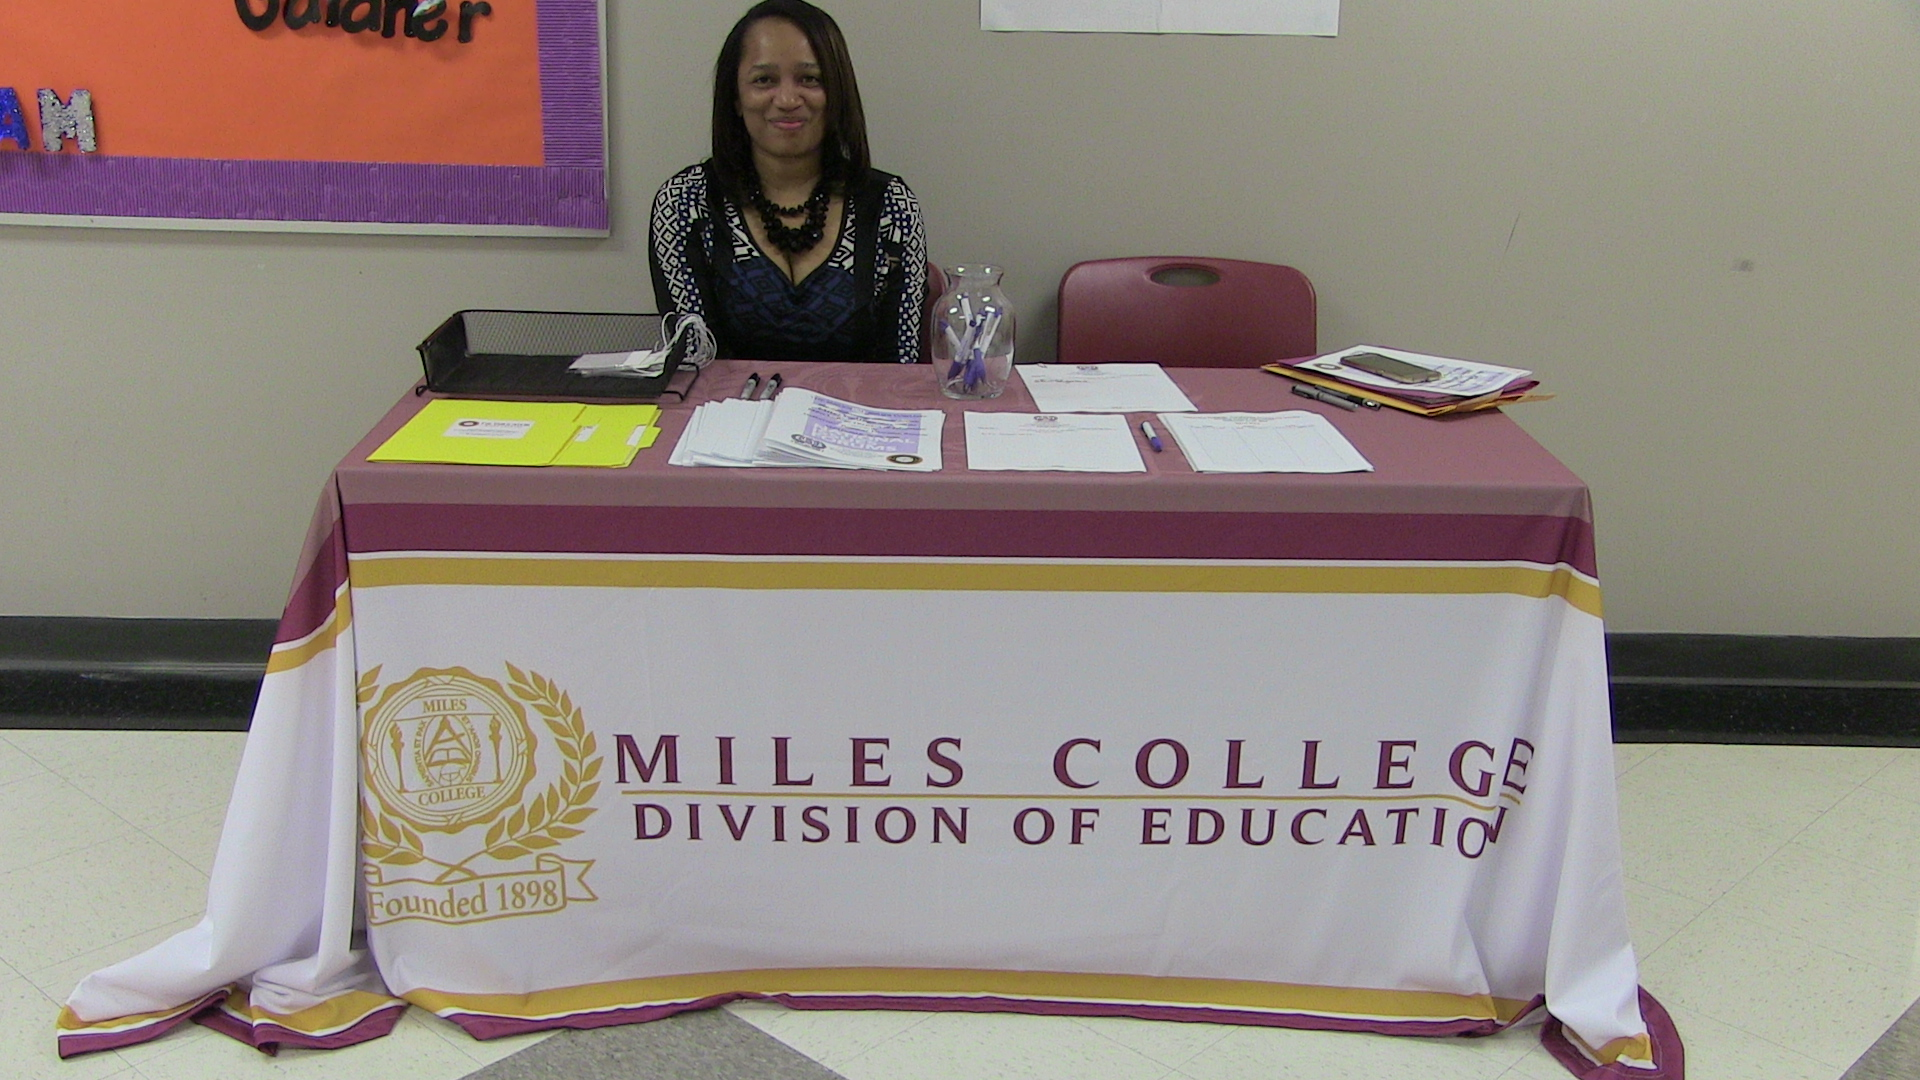 Workshop registration at Miles College